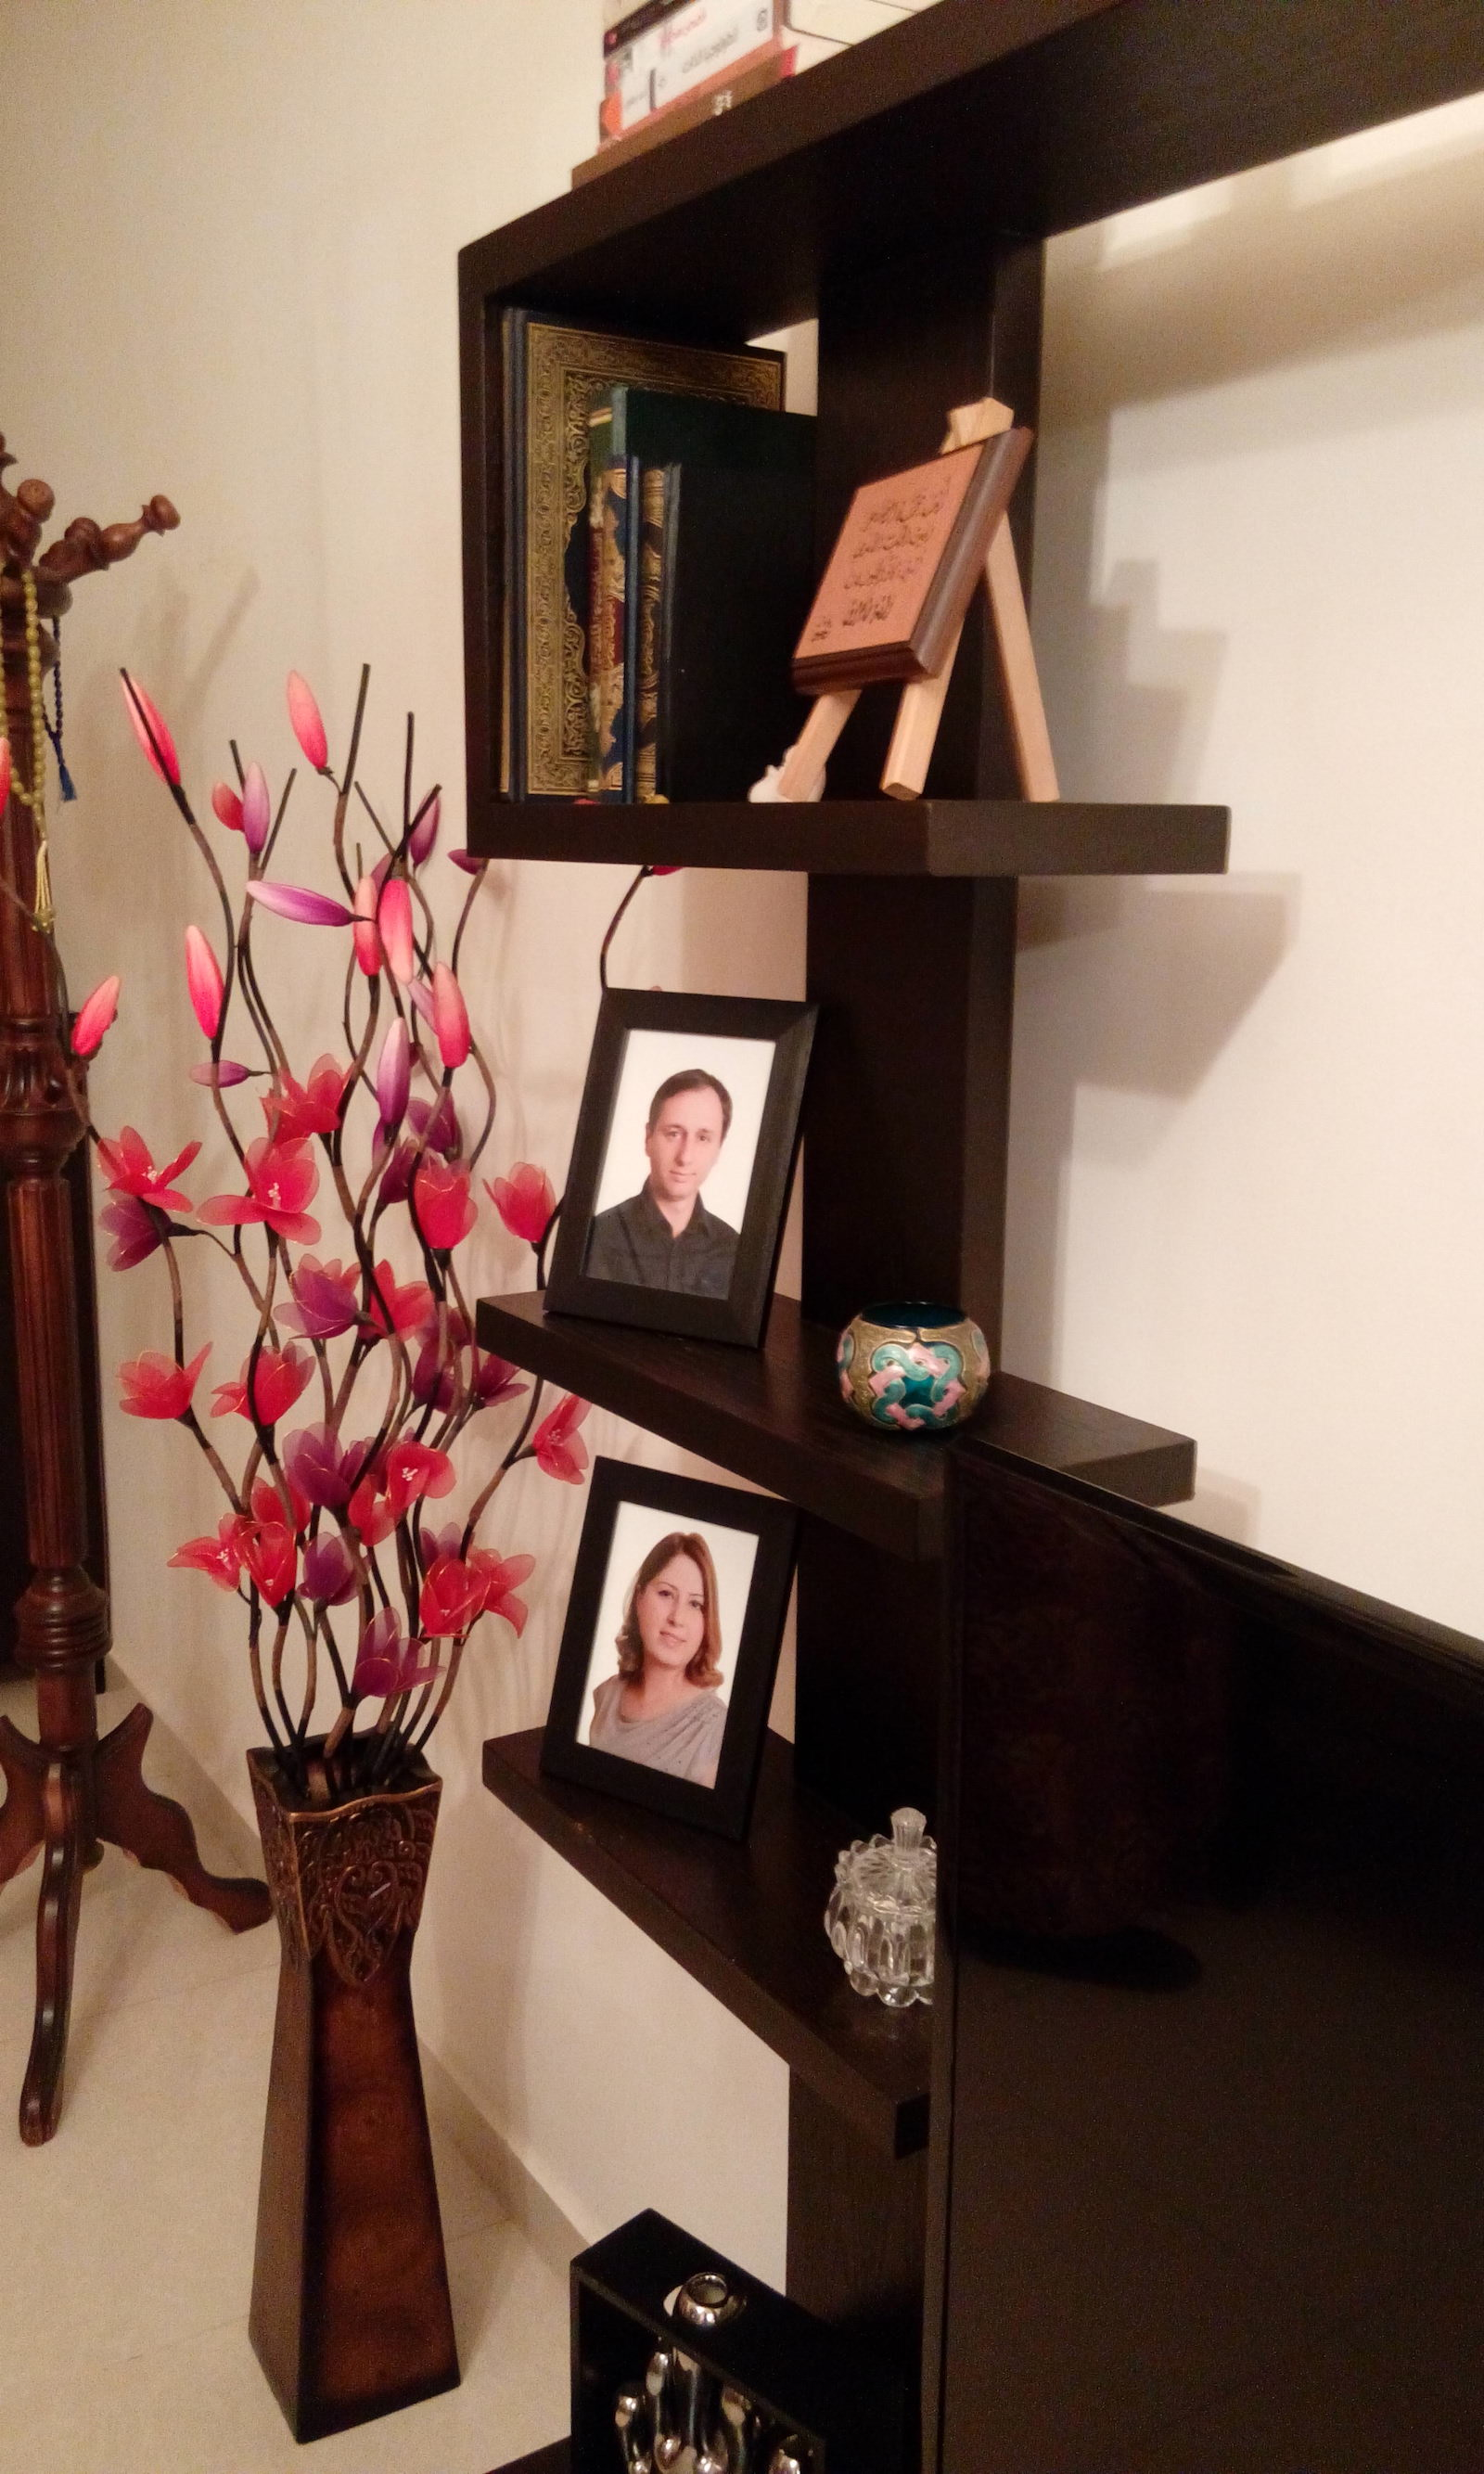 Photos of Bislan and Sarima at the home of Yashar Islam, a Syrian Circassian man who lives in Jordan